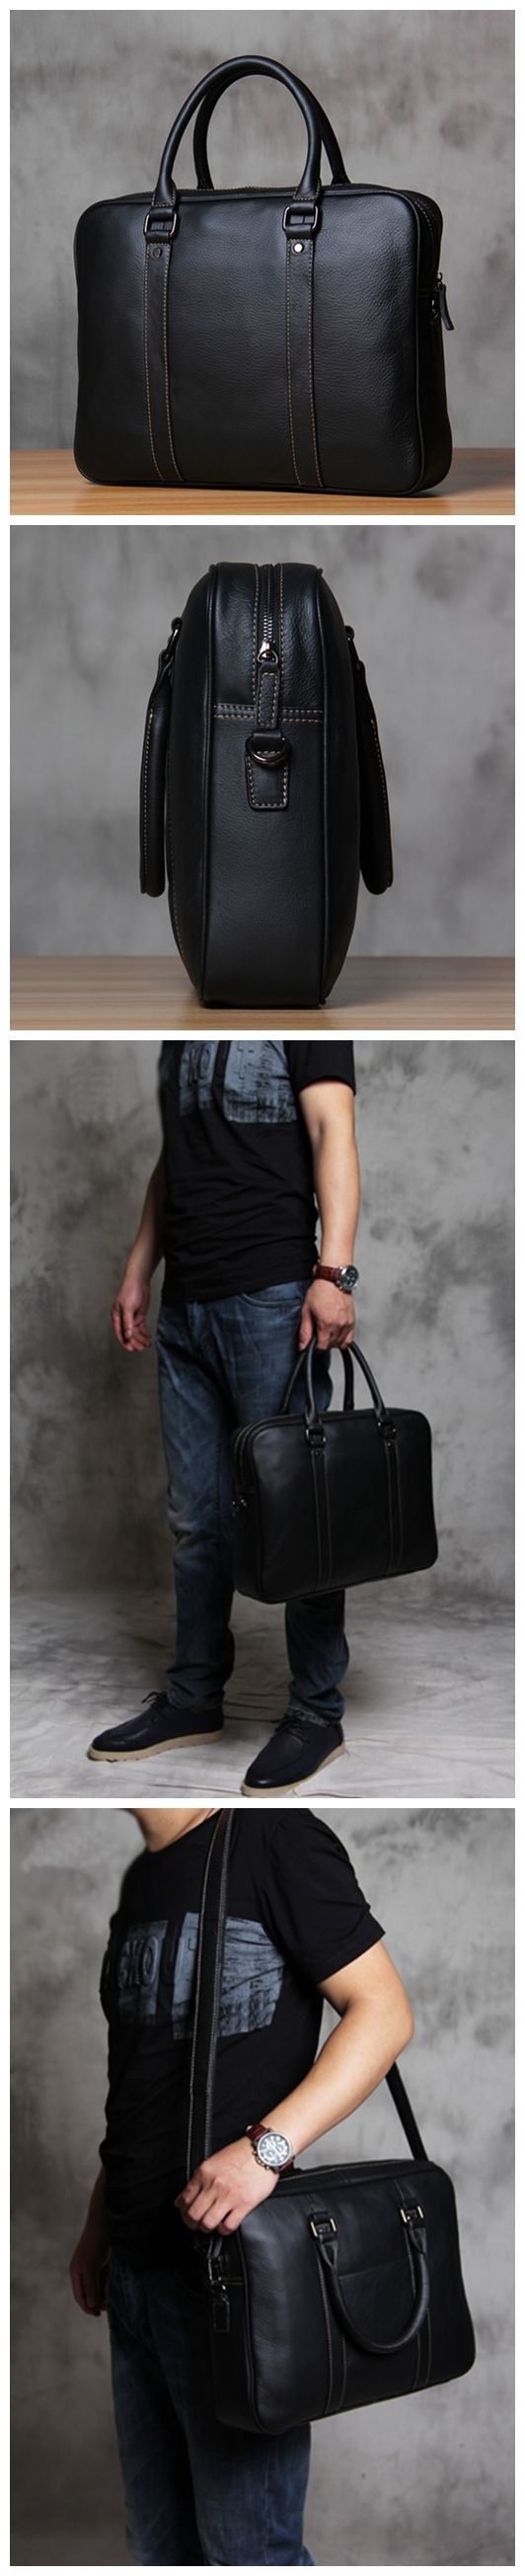 Handmade Men's Leather Briefcase Messenger Bag Handbag Fashion Laptop Bag YS103